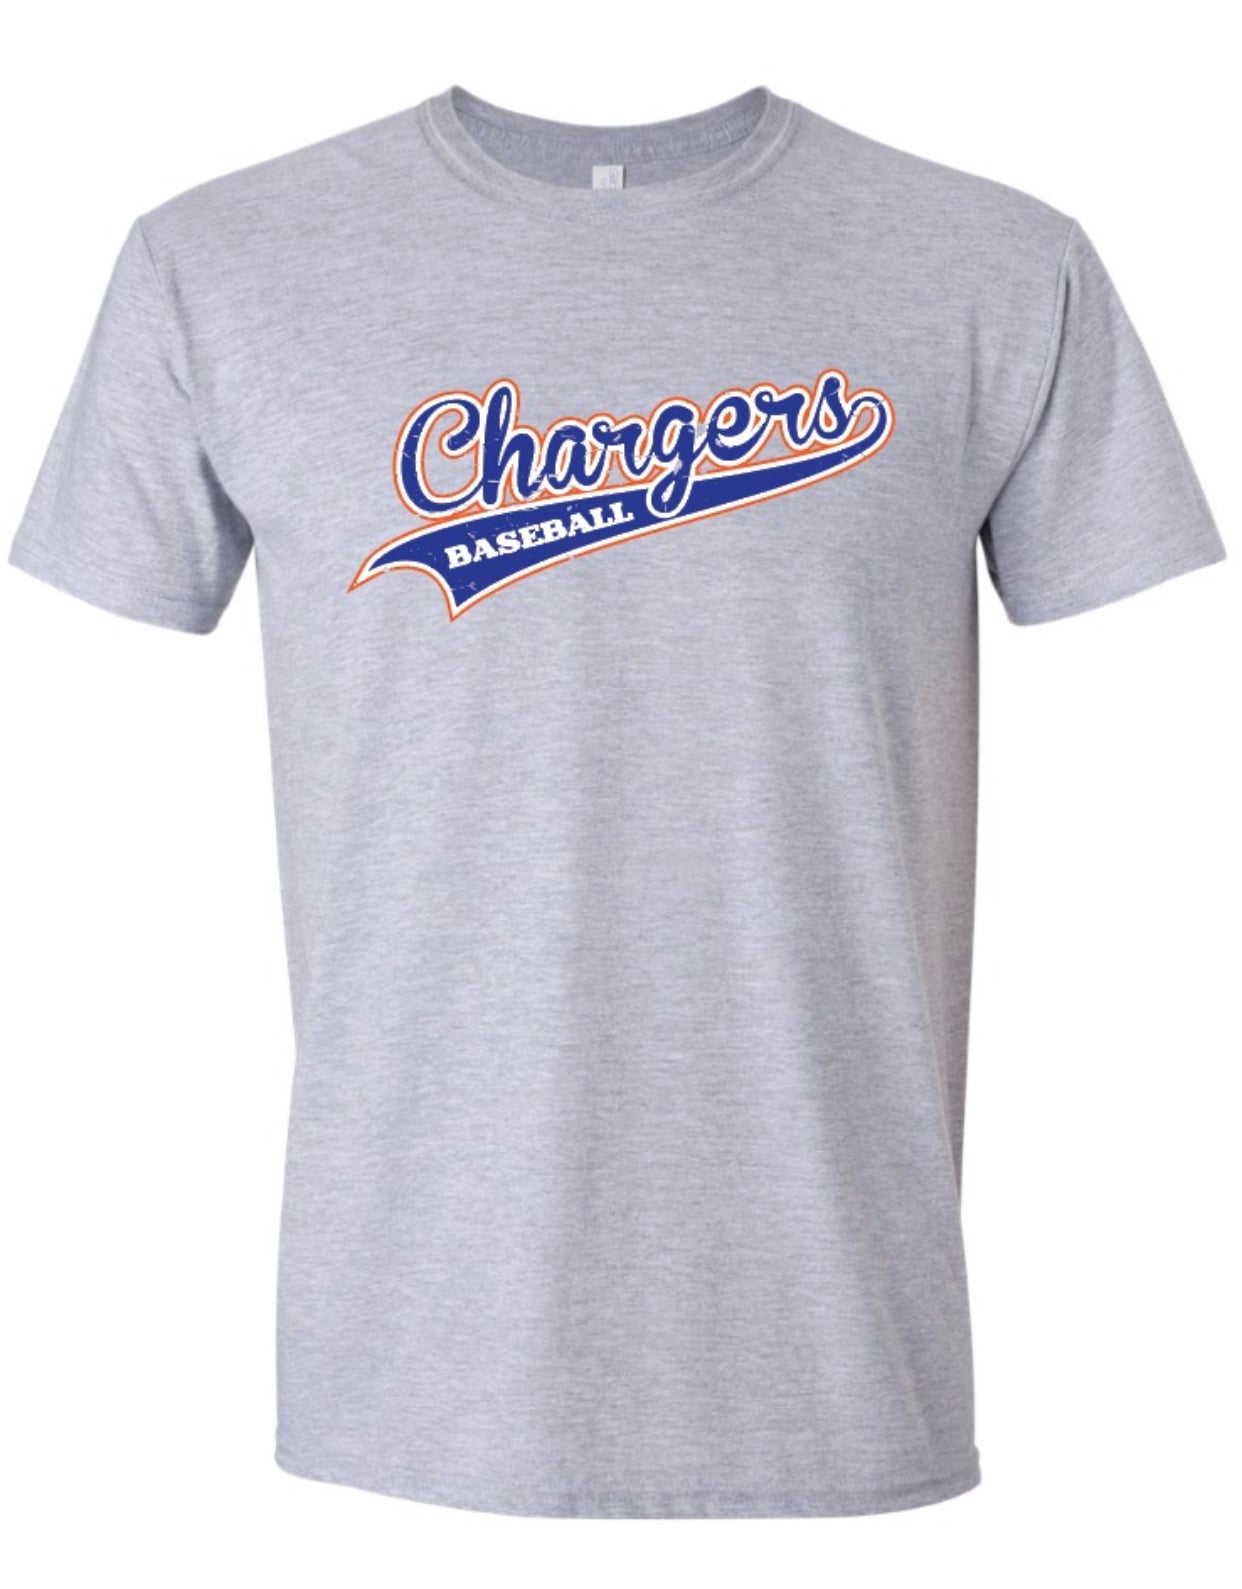 Image of Southaven Chargers Baseball Spring Tshirt